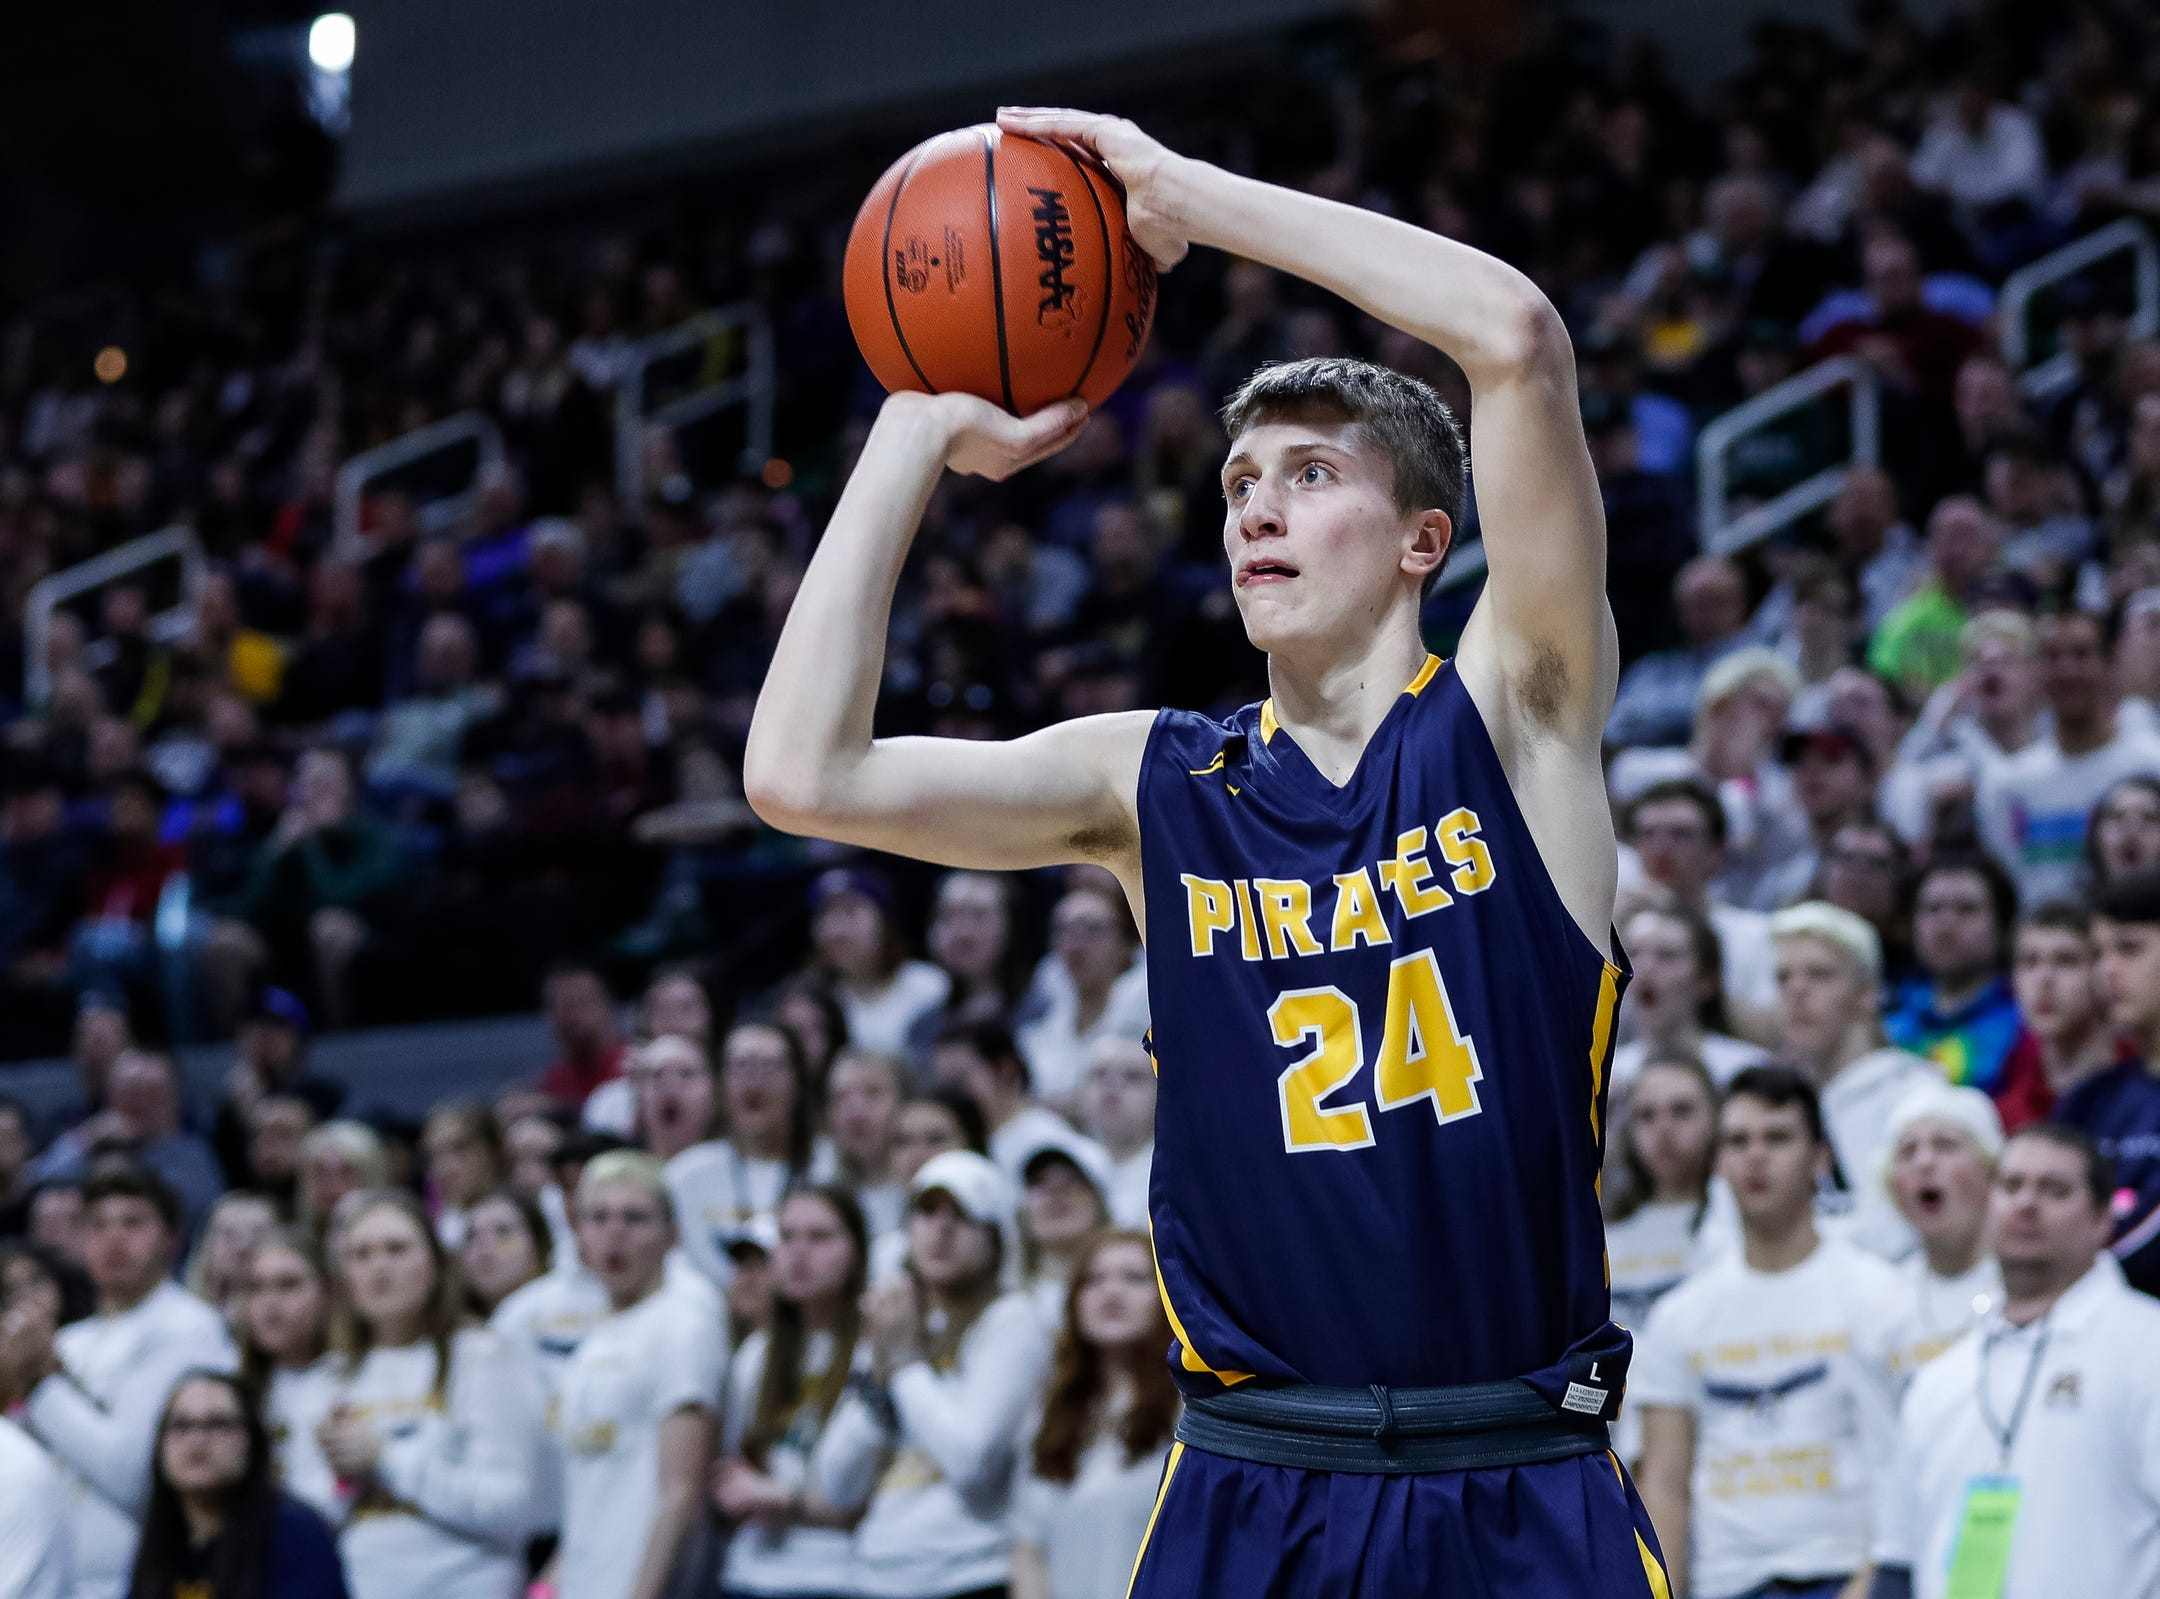 Pewamo-Westphalia's Keegan Smith (24) attempts for a 3-point shot against Erie-Mason during the first half of MHSAA Division 3 semifinal at the Breslin Center in East Lansing, Thursday, March 14, 2019.